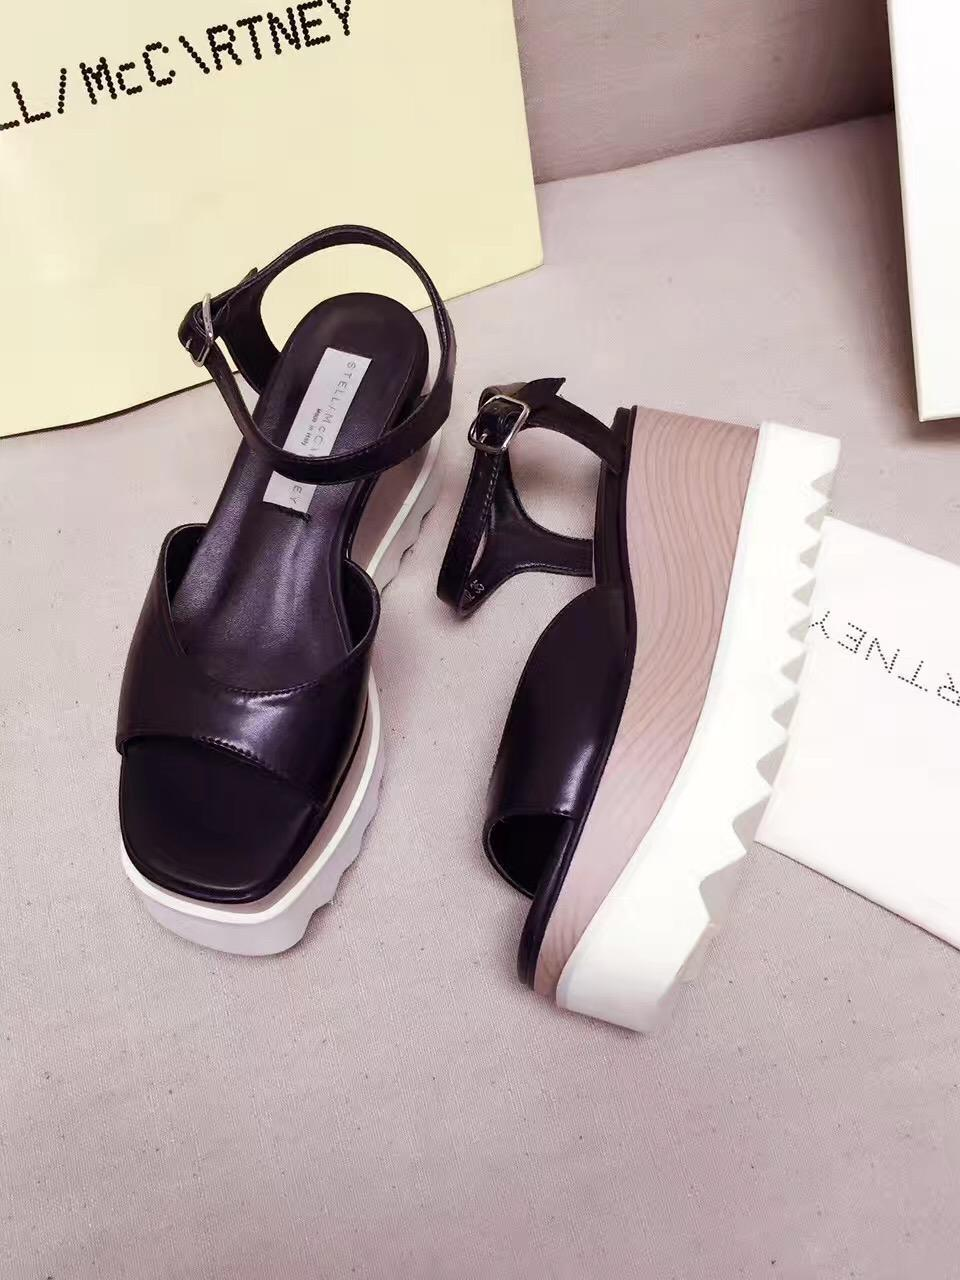 c6cb3be89be9 Stella Mccartney Buckle Sandals Without Stars Elyse Cut Out Fashion Shoes  Genuine Leather High Heels Heels From Luischen